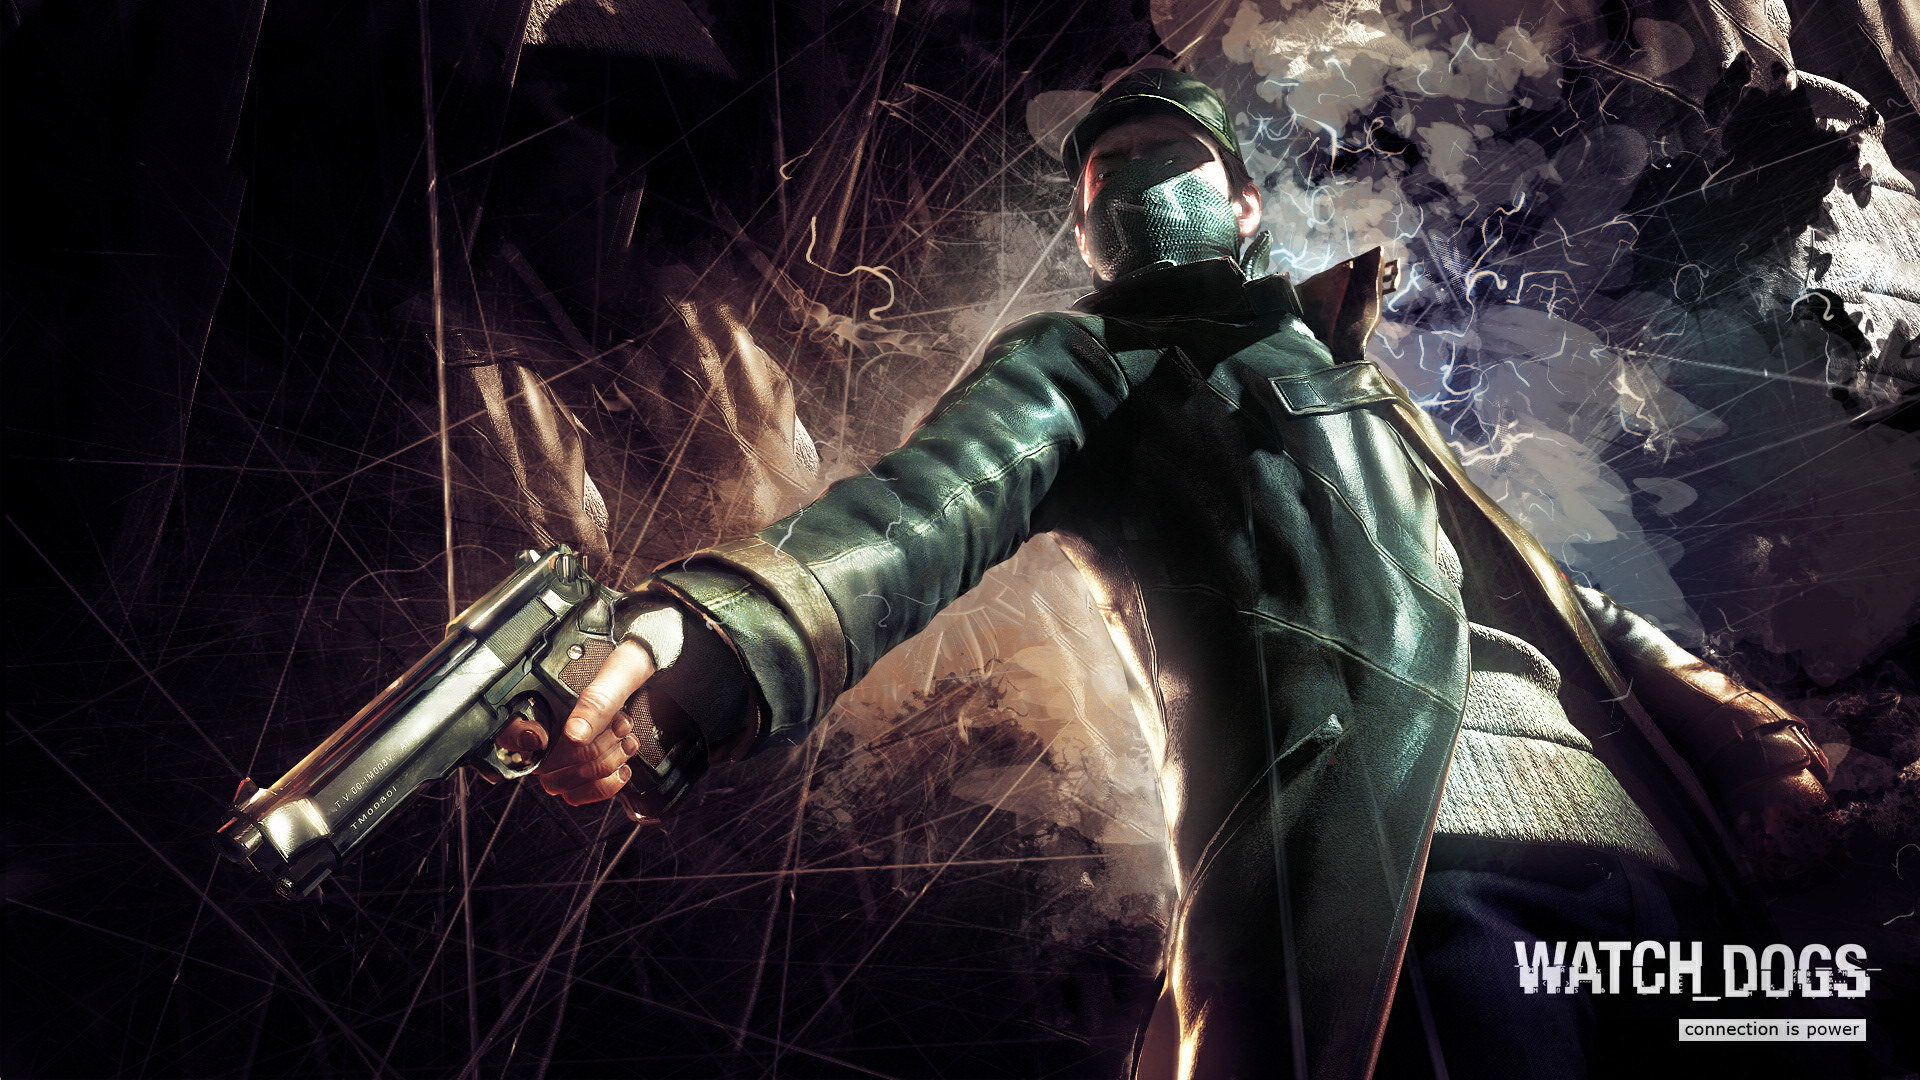 Cool Video Game Wallpapers Hdubisoft Video Game Watch Dogs Hd Catch 1920x1080